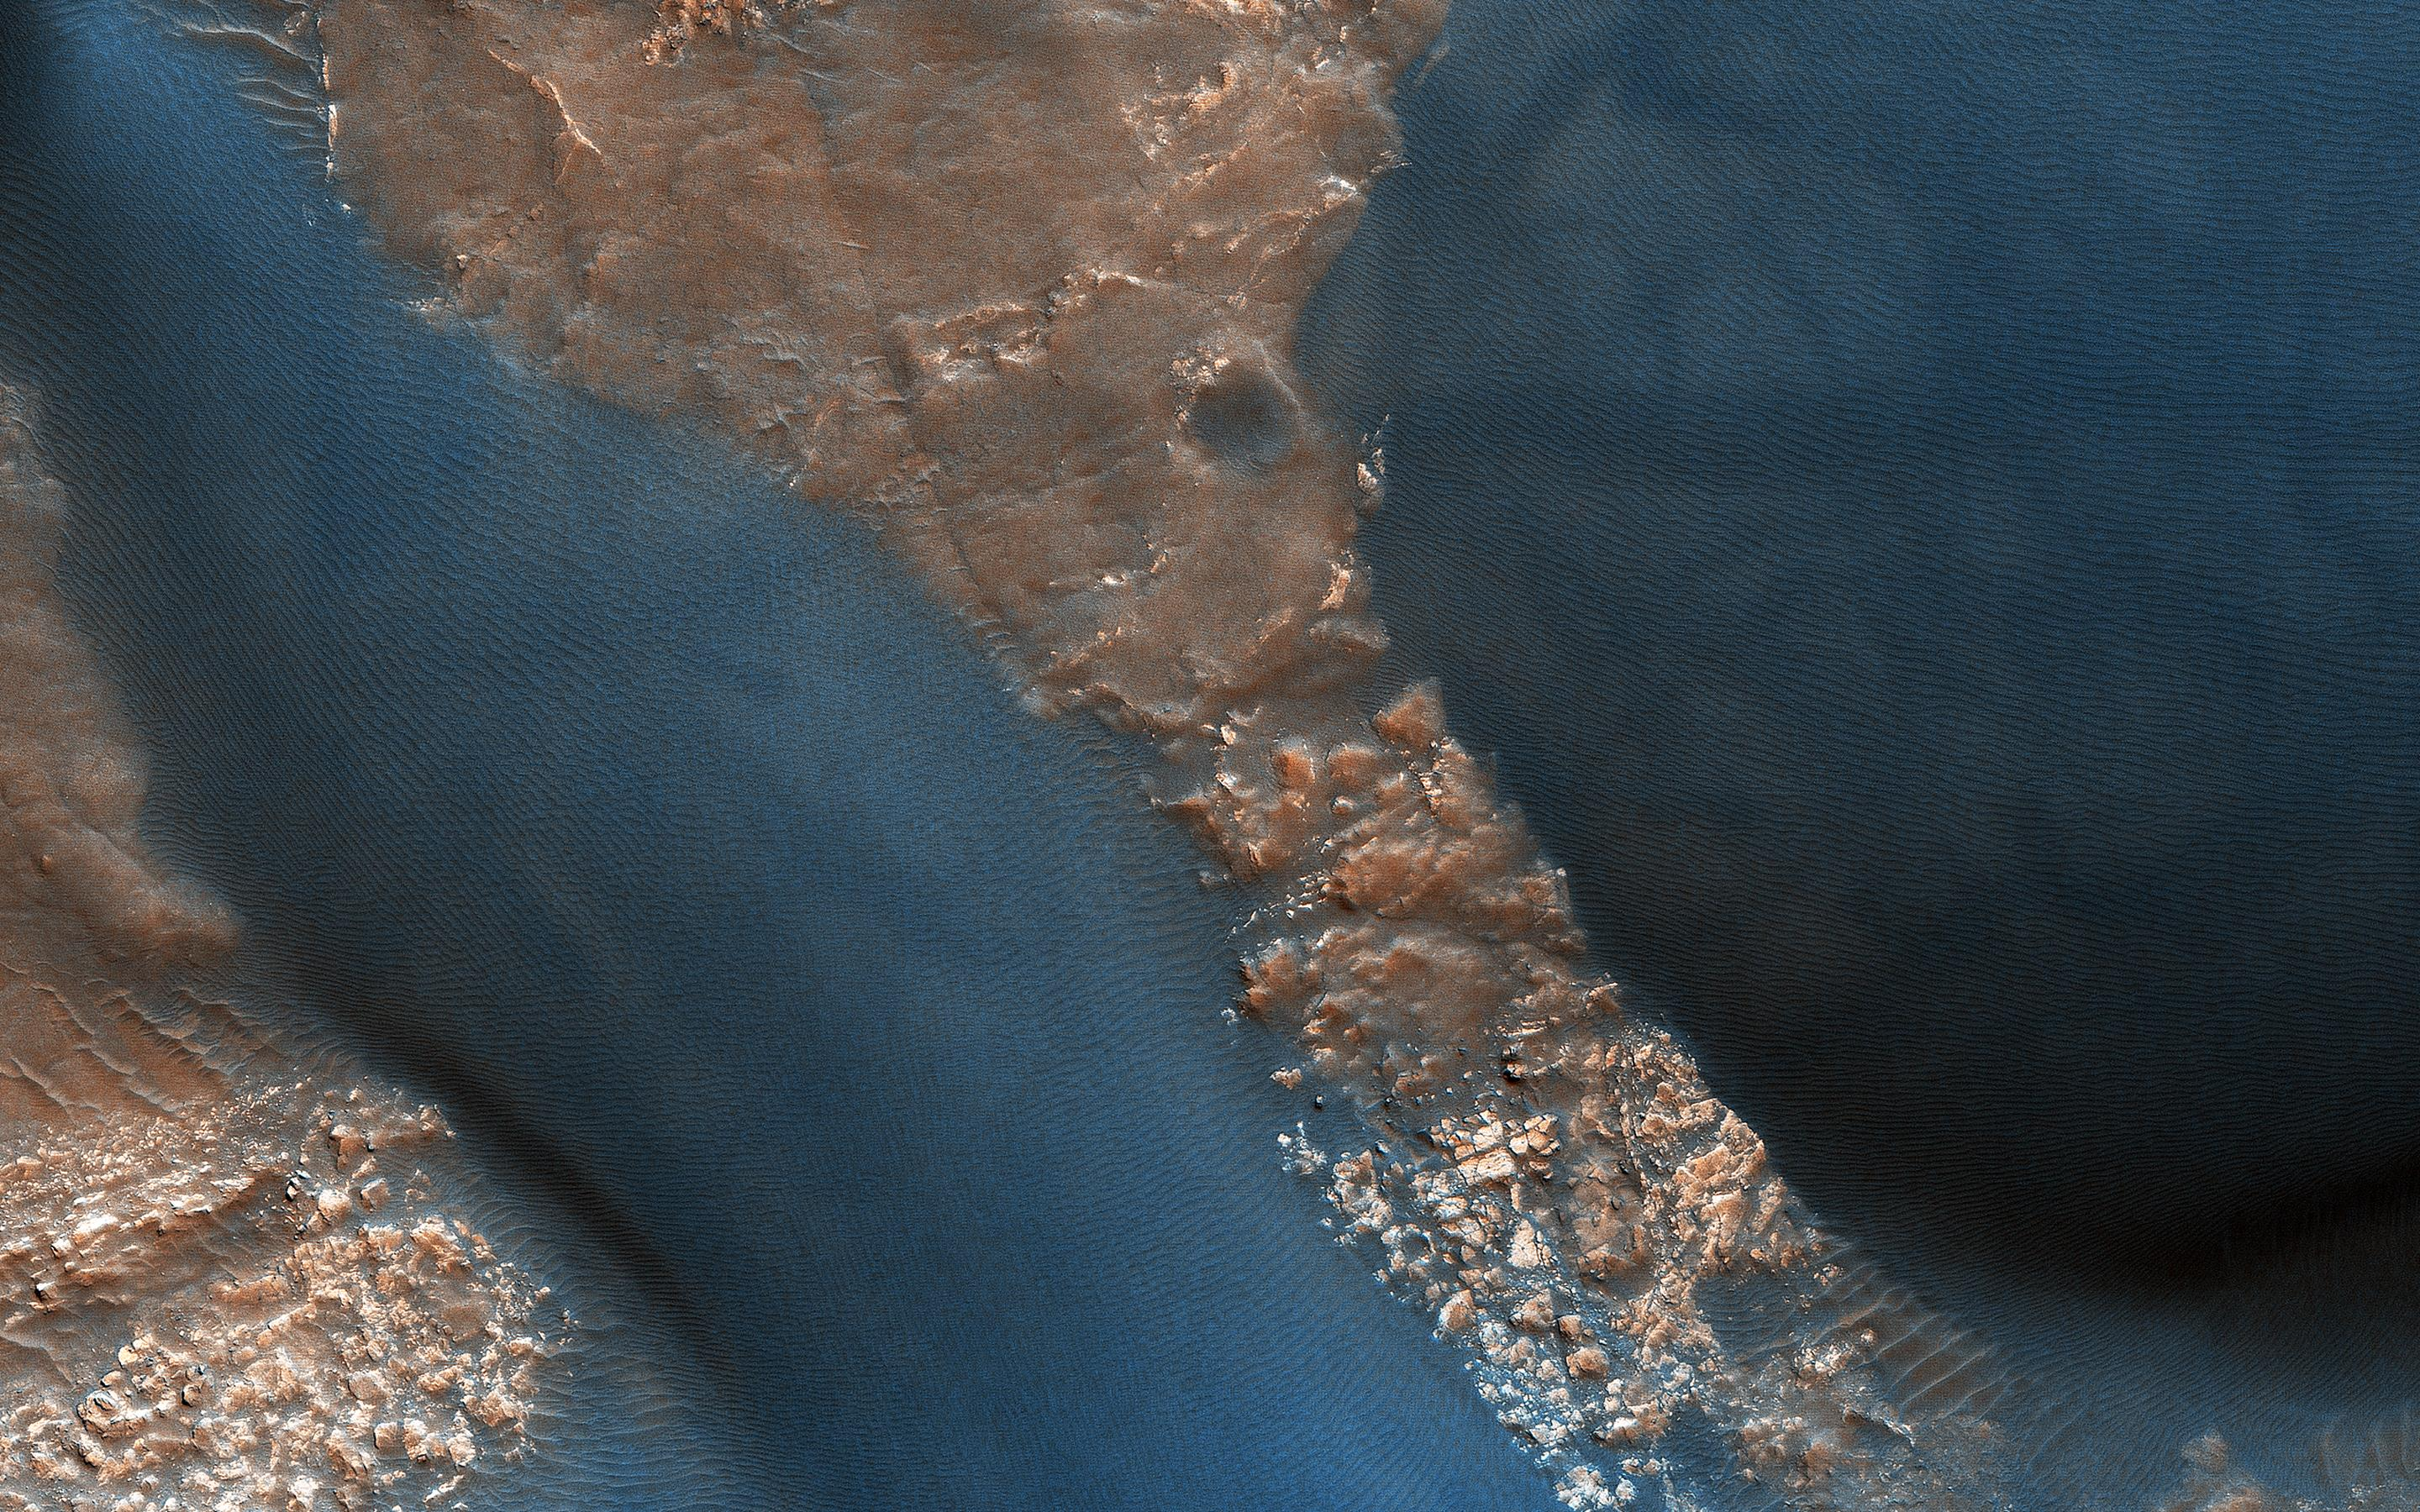 PIA22869: Active Dunes in Wirtz Crater